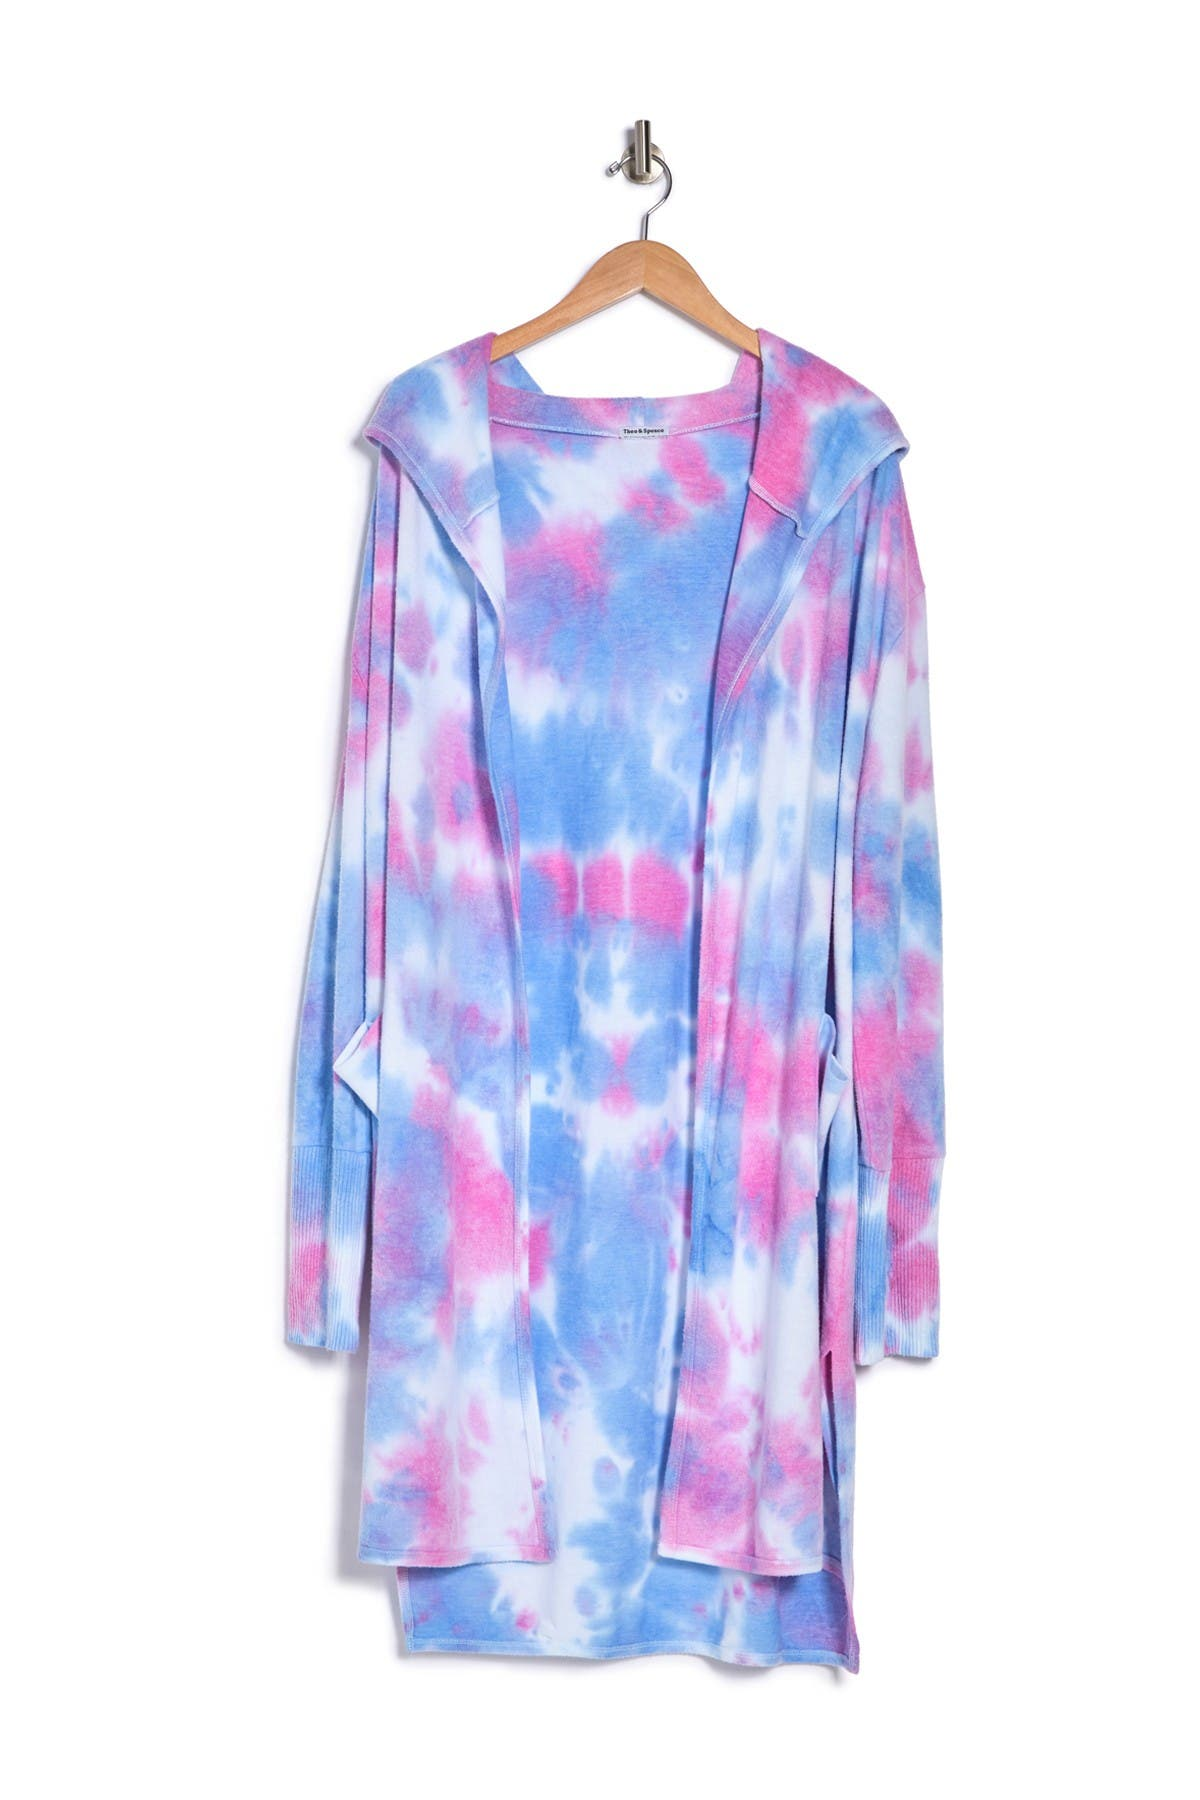 Theo and Spence Bubblegum Tie-Dye Hooded Lounge Cardigan